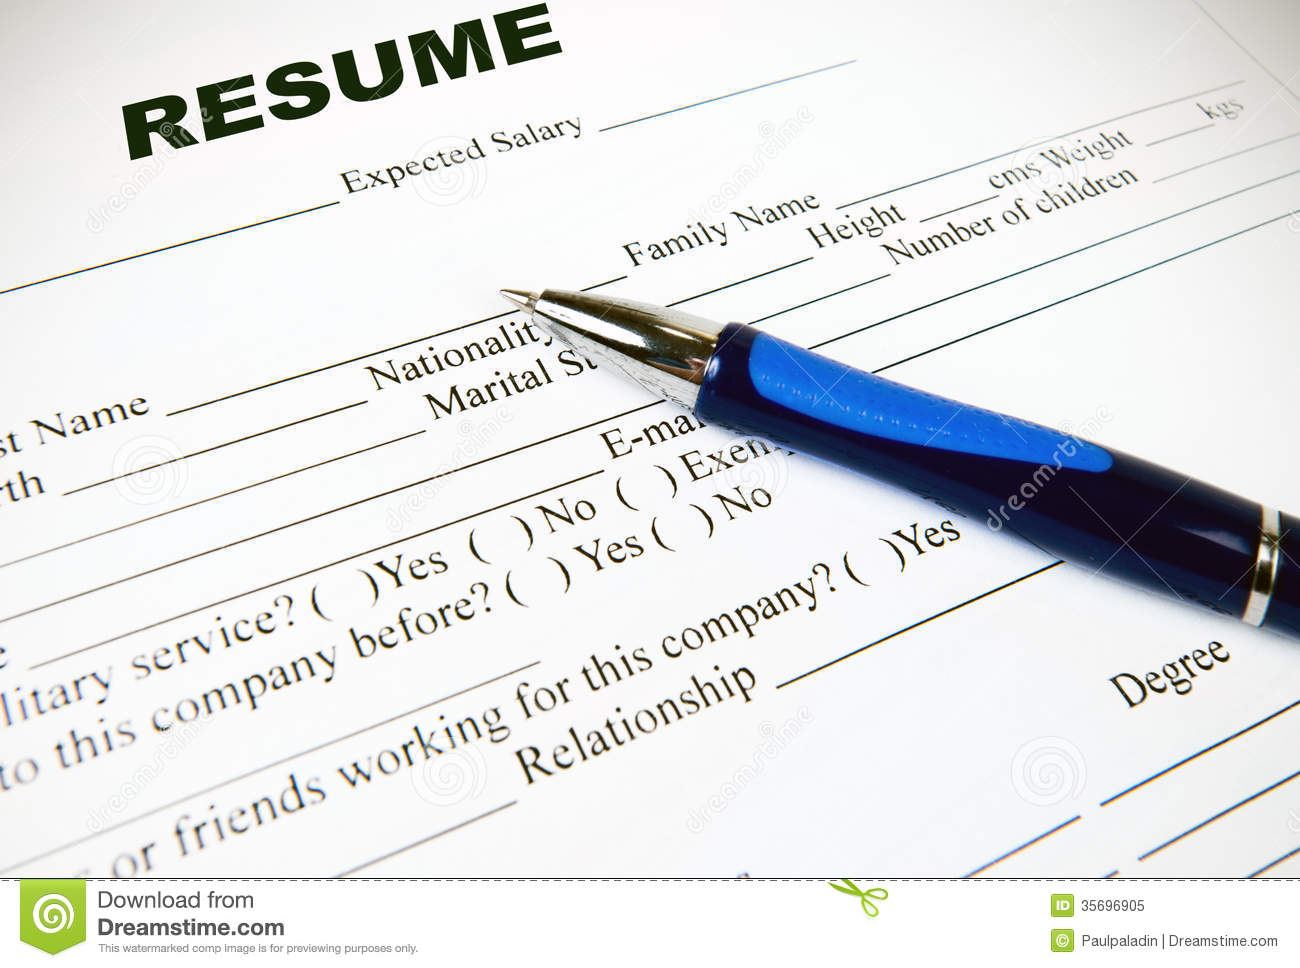 Paper to use for resume